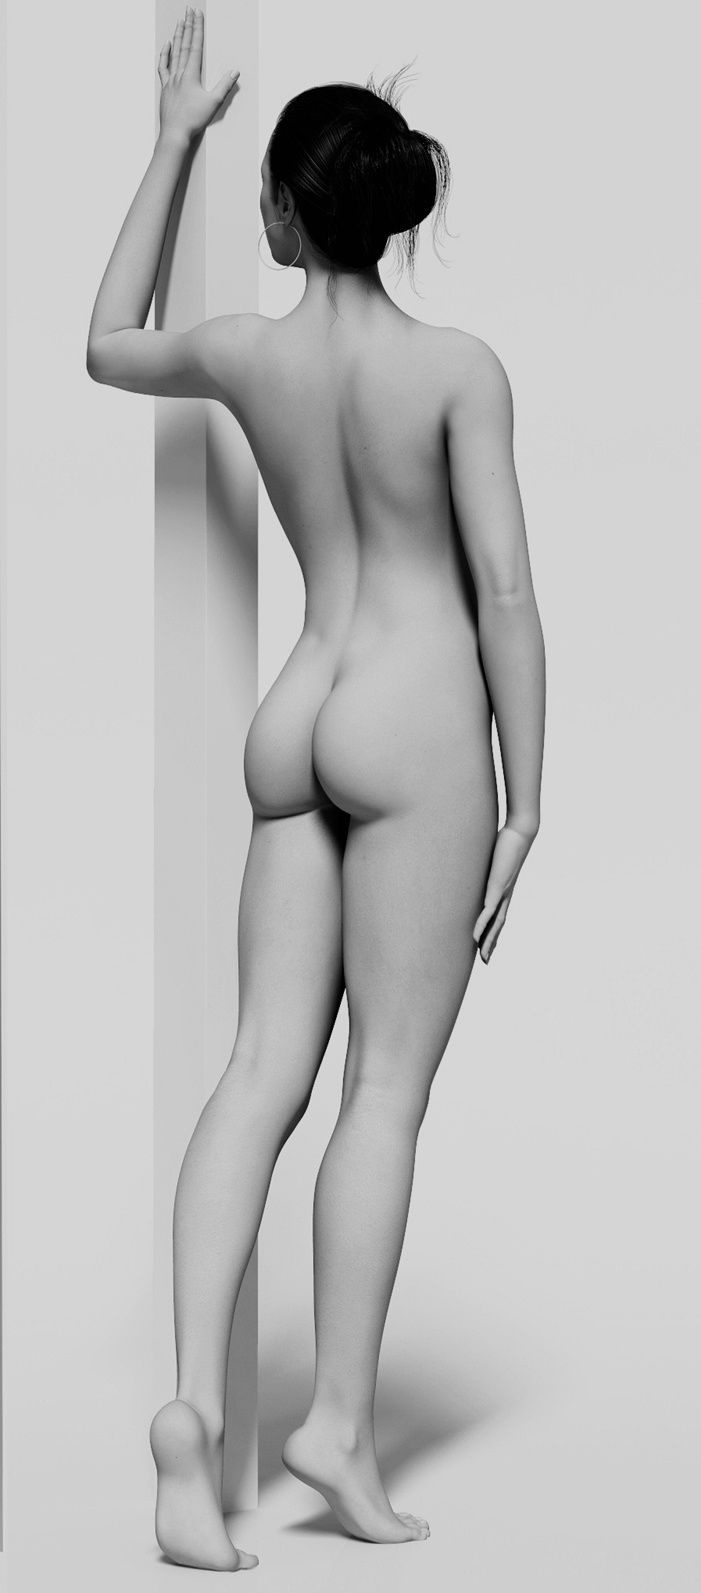 Nude Model Full Figure Poses 17